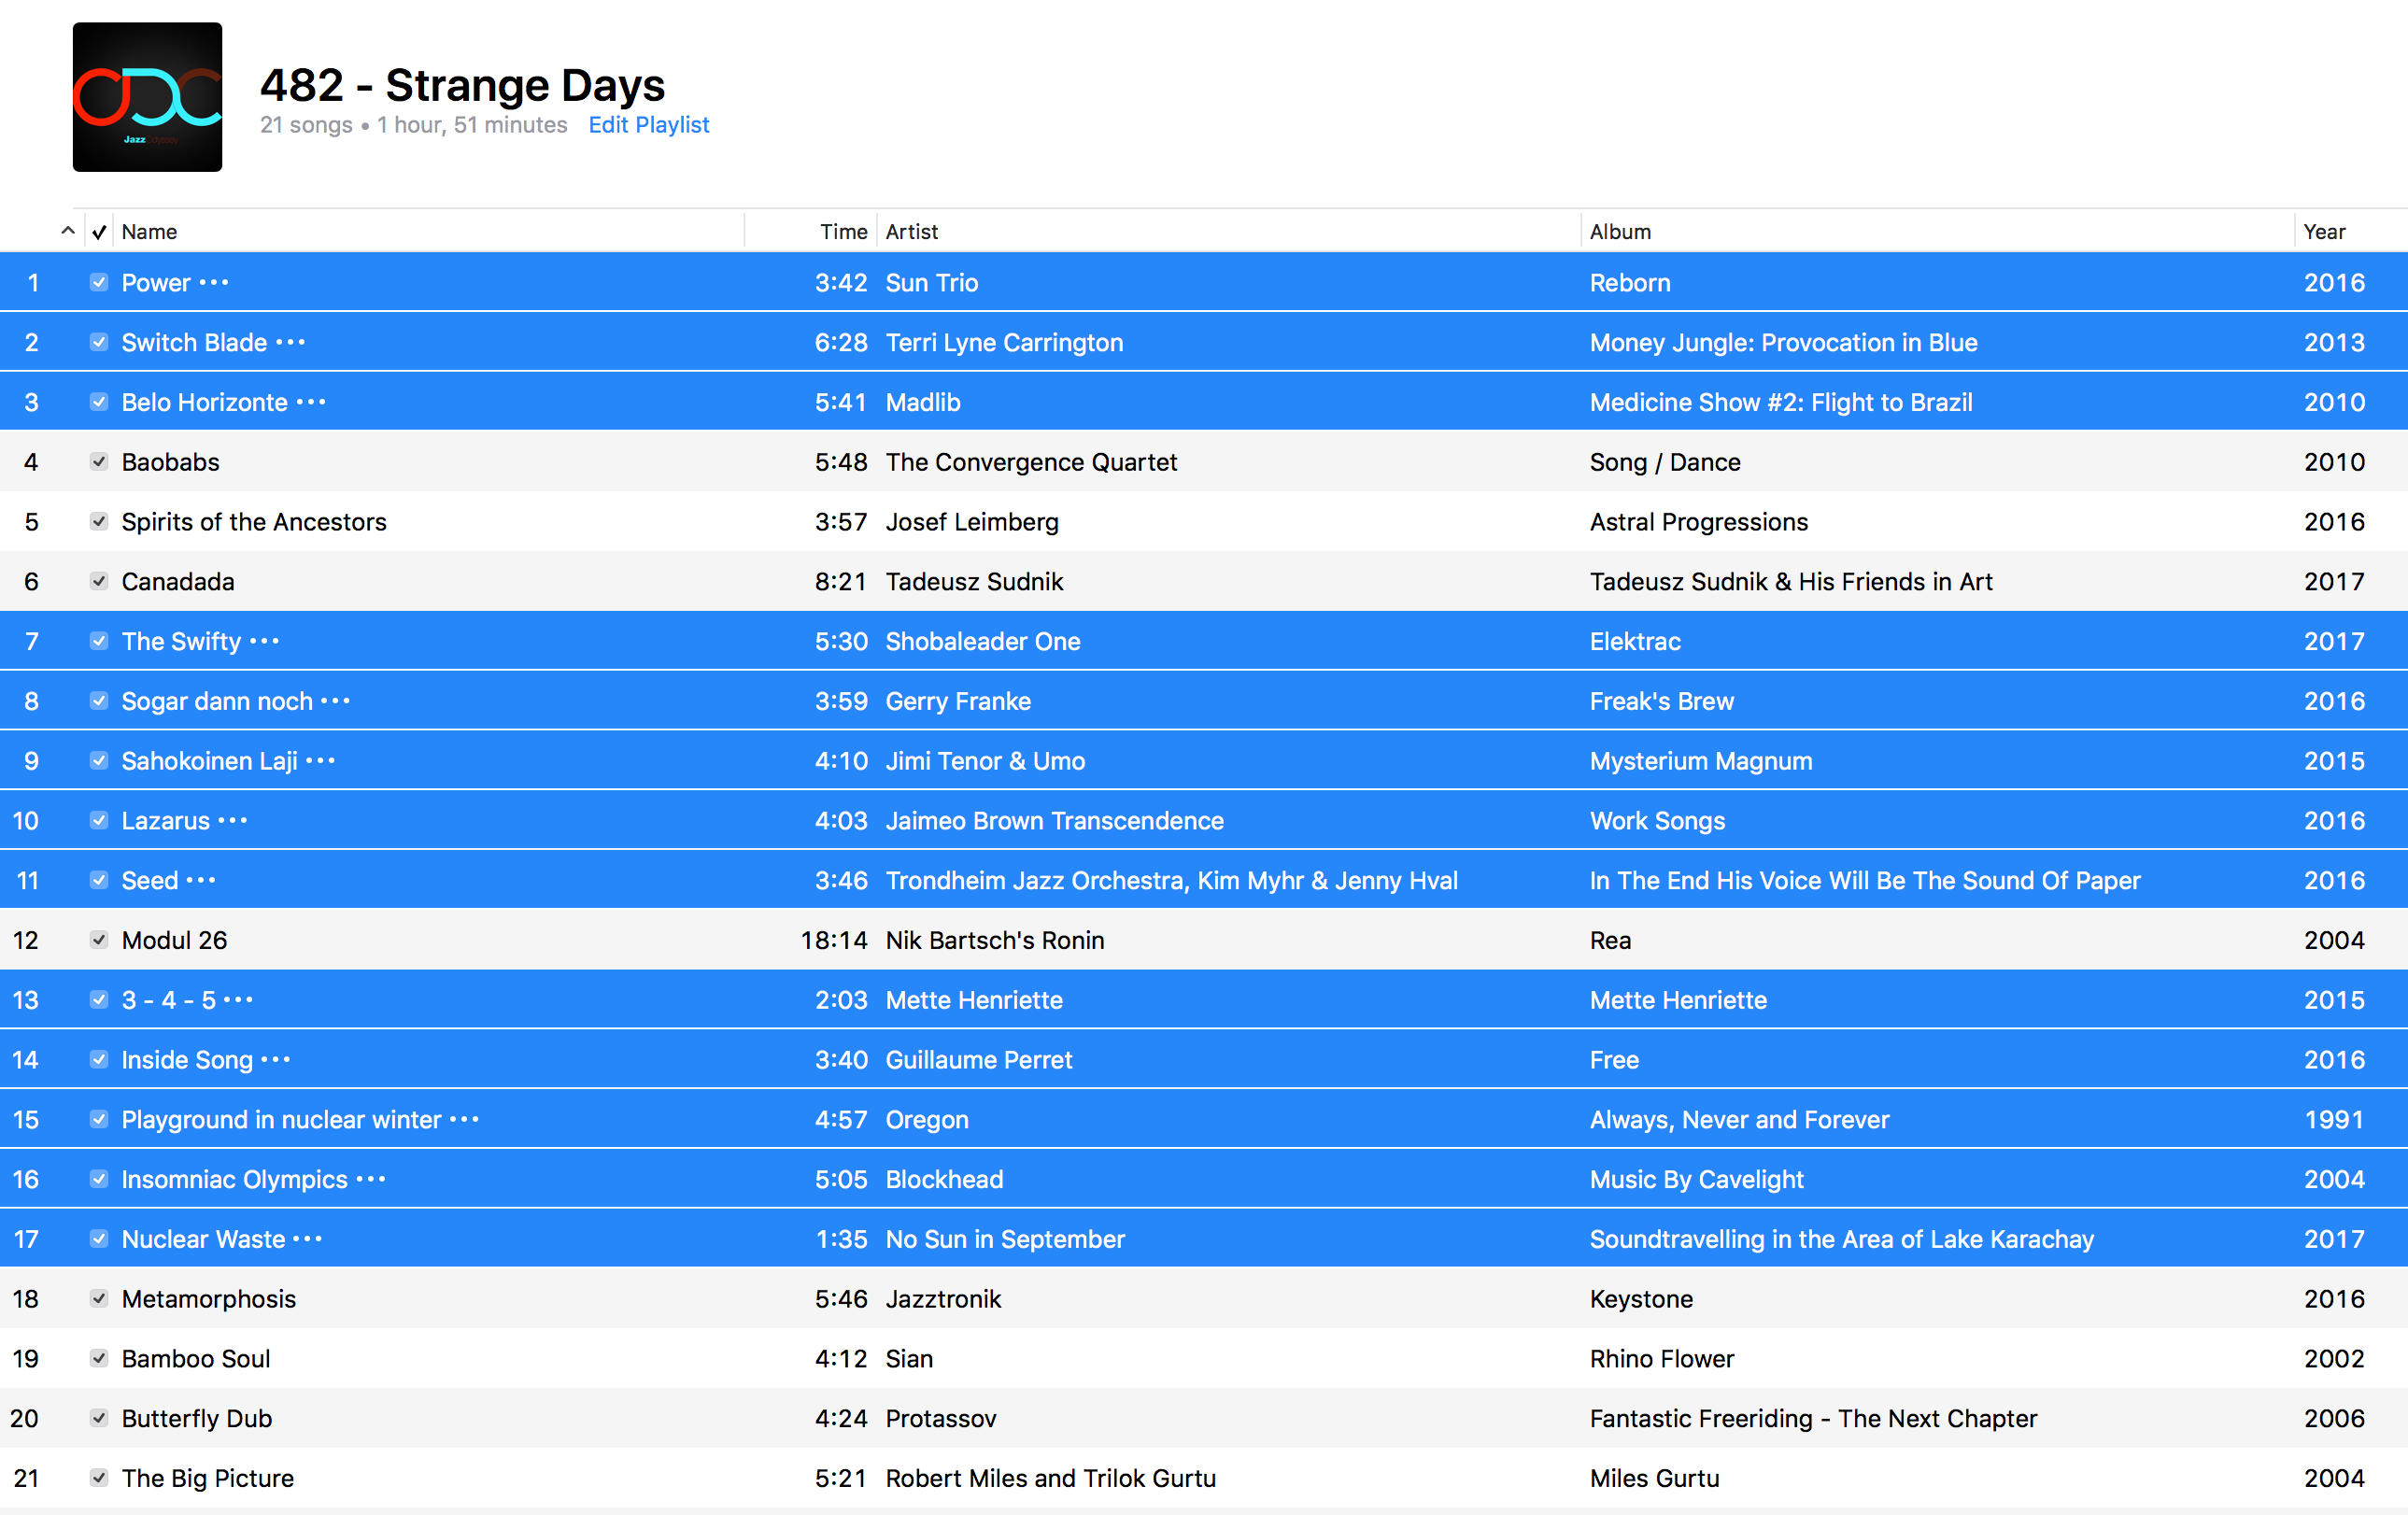 Jazz ODC #482 - Strange Days - Playlist